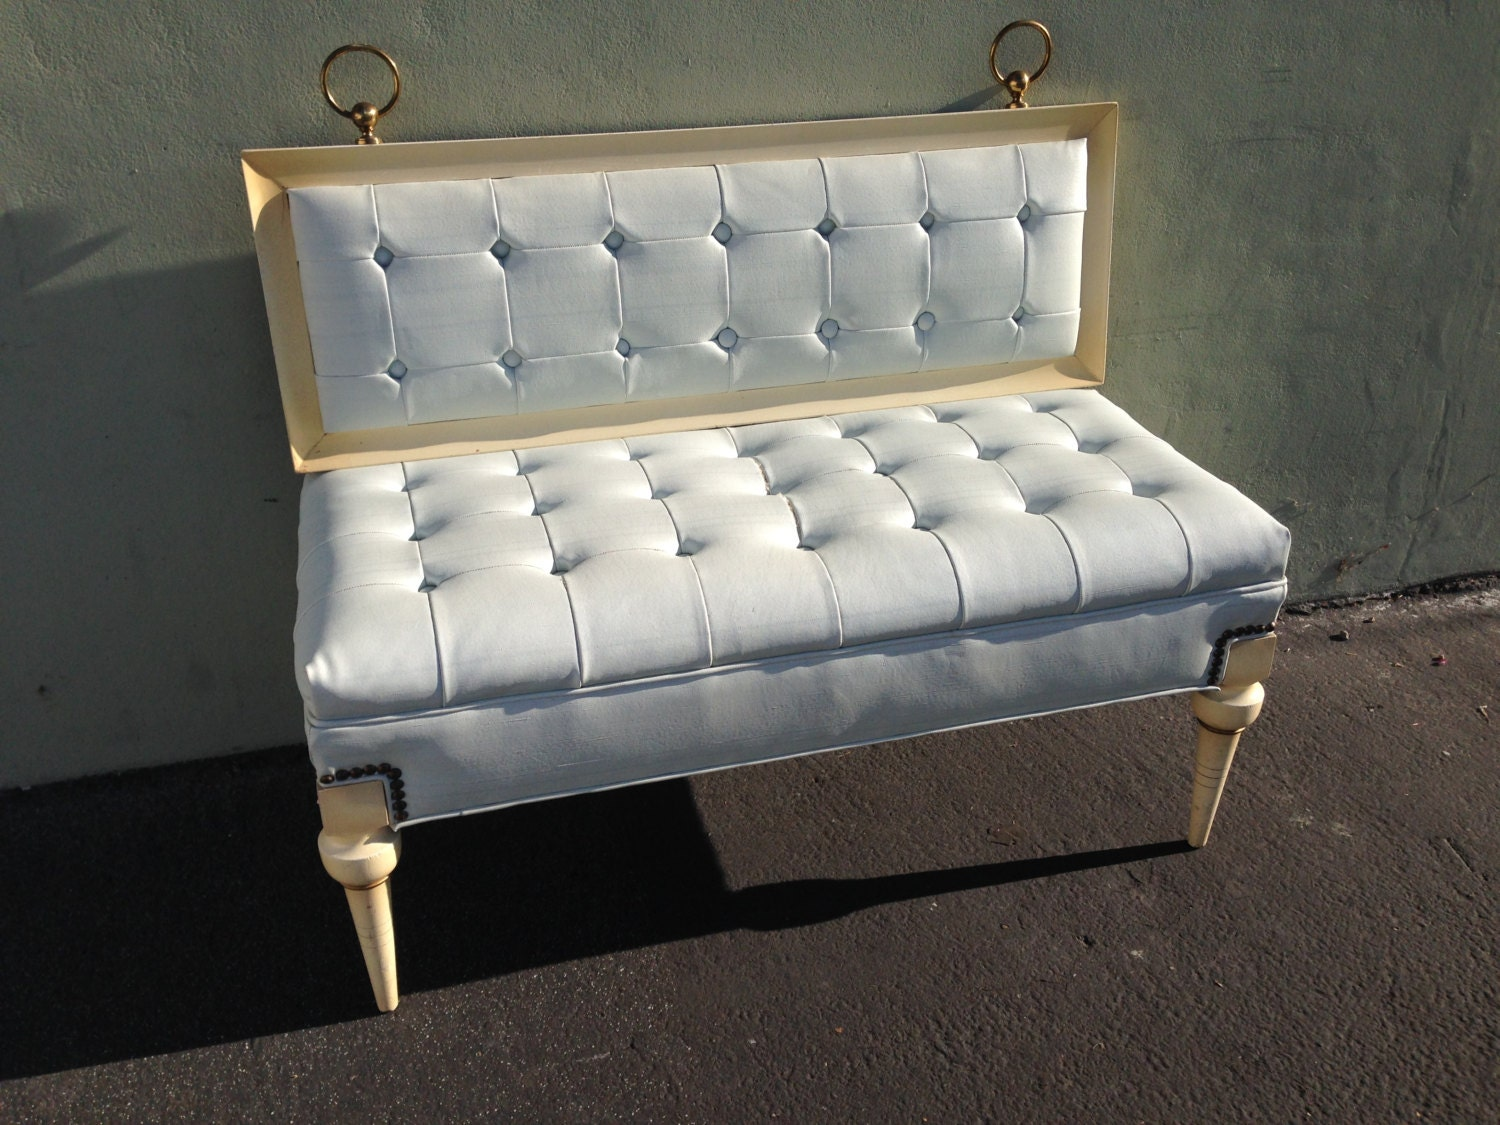 2pc Headboard Bench Hollywood Glam Regency French Provincial Wall Twin Bed Tufted Upholstered Boudoir Vanity Victorian Decor Single Chic